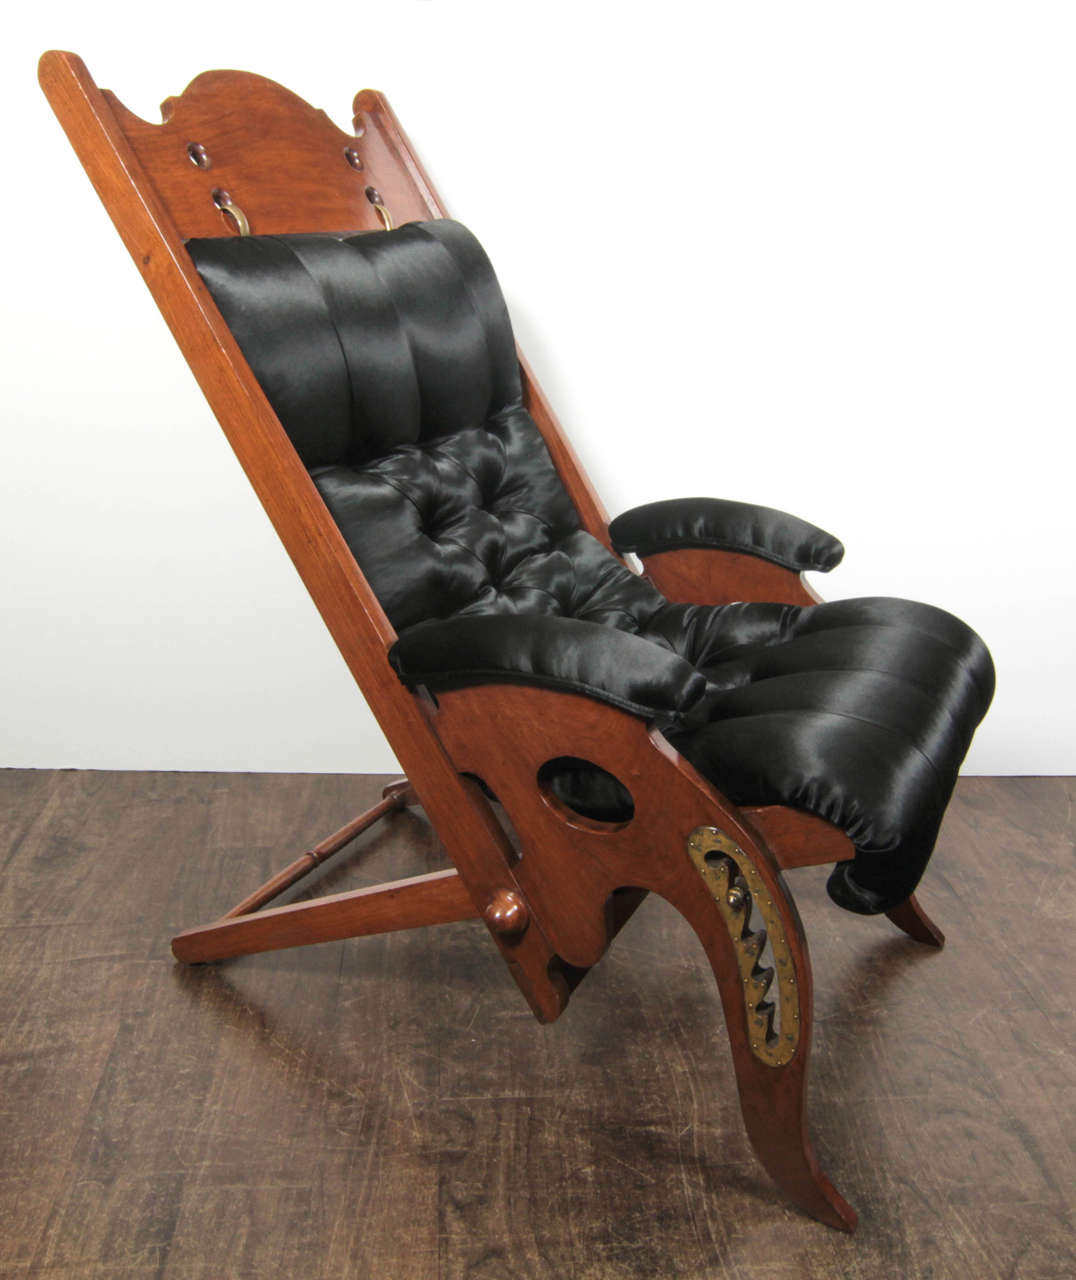 An Edwardian-style deckchair for a yacht in mahogany and brass with  buttoned upholstery. - Adjustable Deck Chair By Jean-Pierre Hagnauer For Sale At 1stdibs